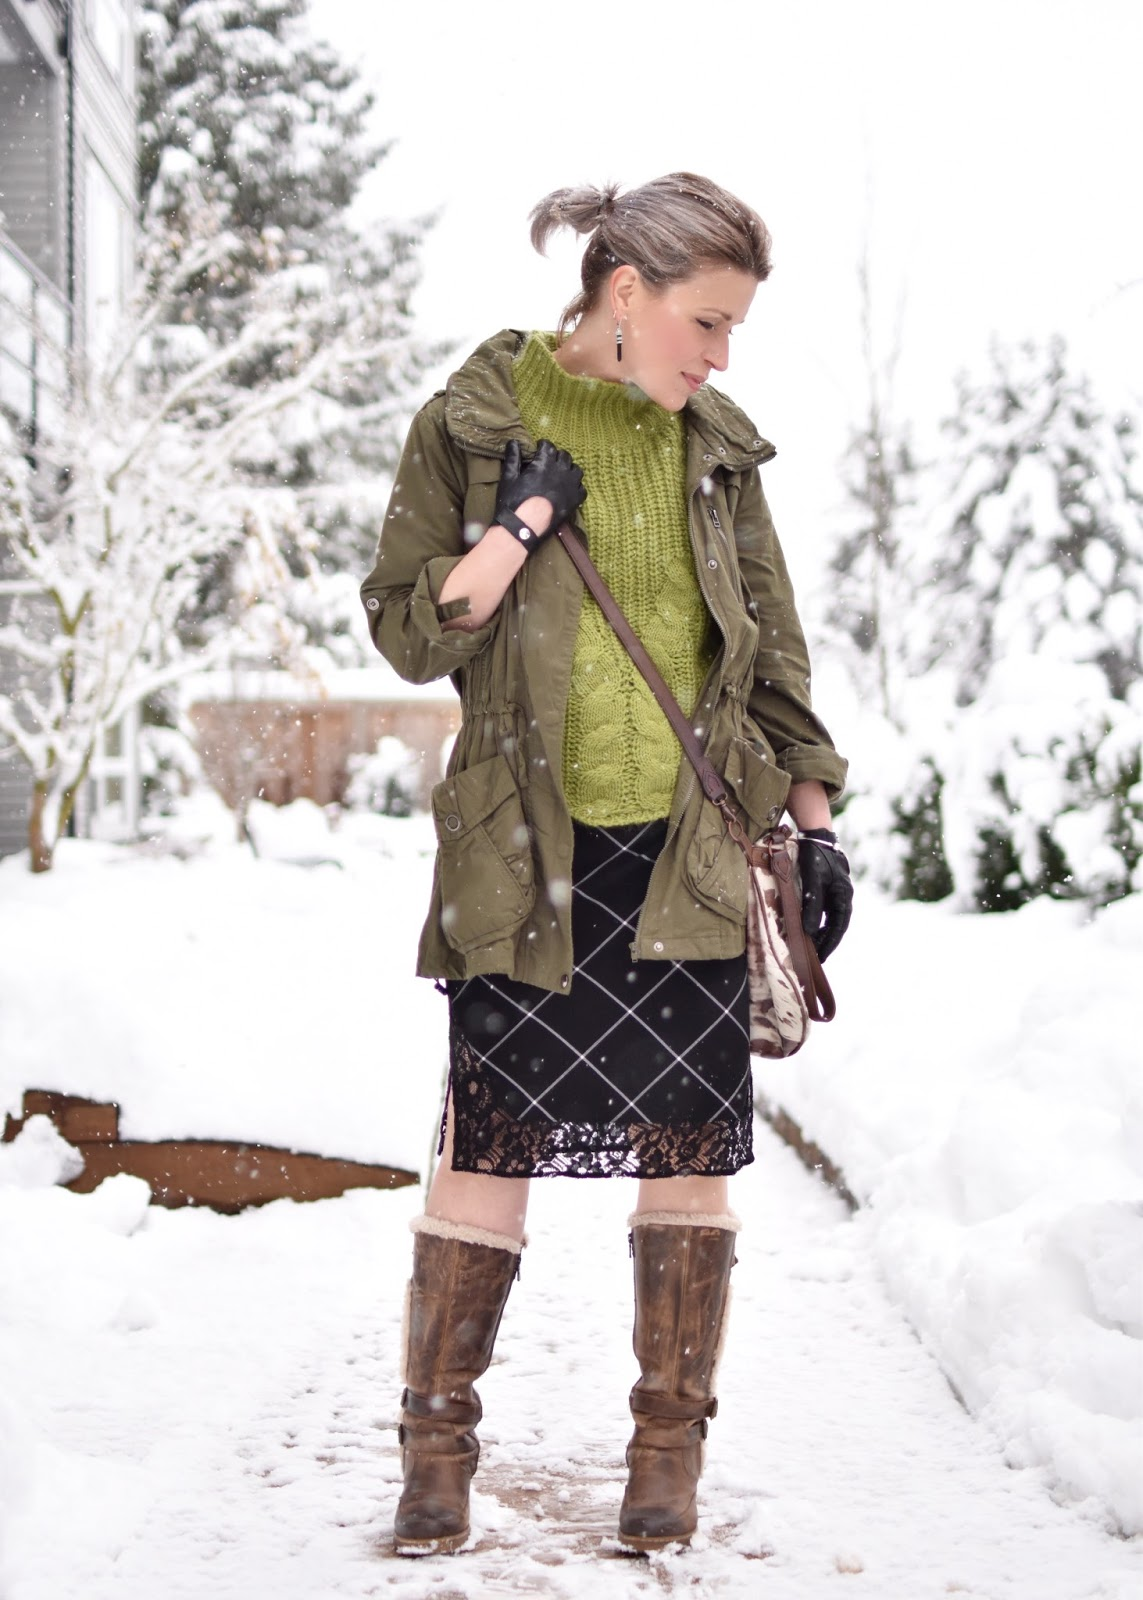 Monika Faulkner outfit inspiration - styling a plaid slipdress with a cropped sweater, army-inspired parka, and fleece-trimmed block-heeled boots